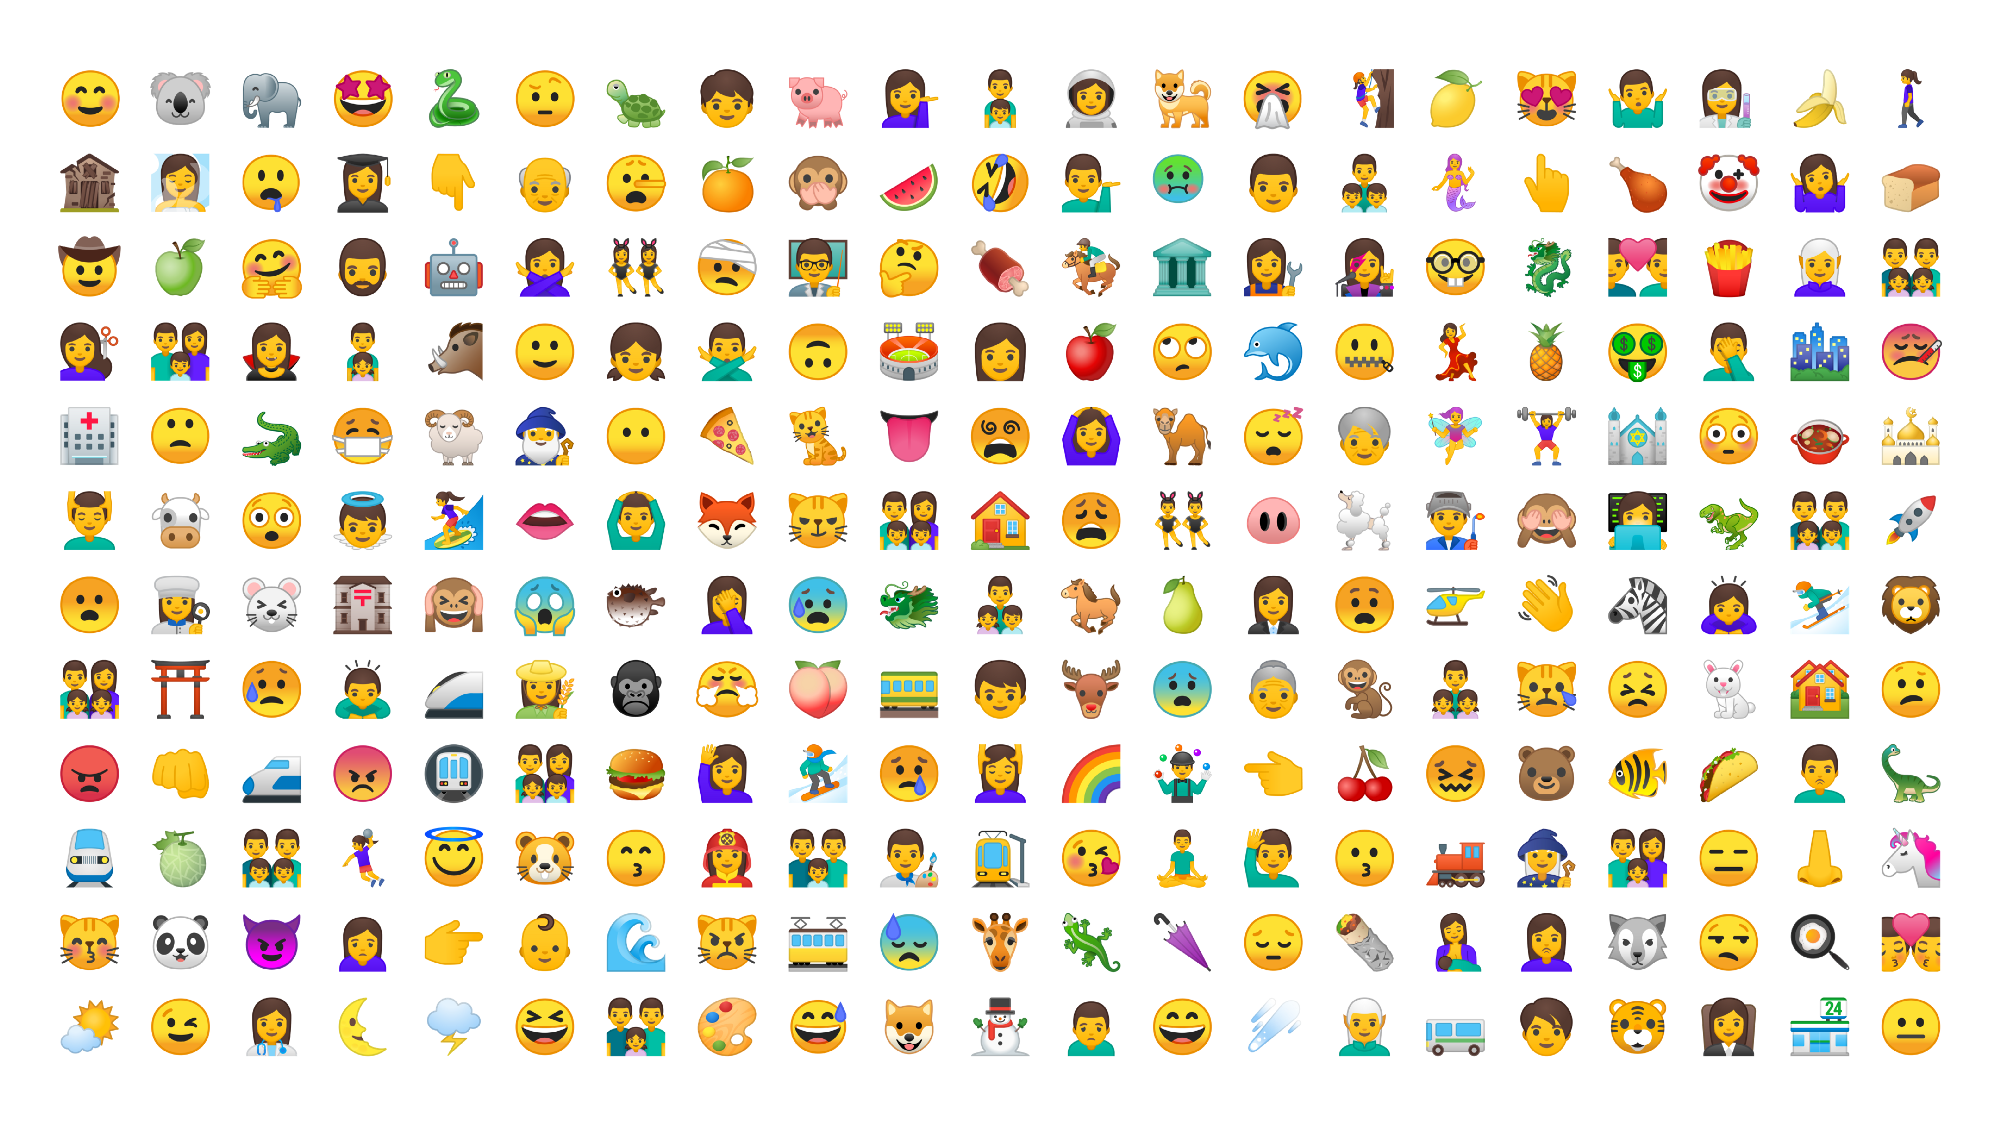 New emoji for Android O